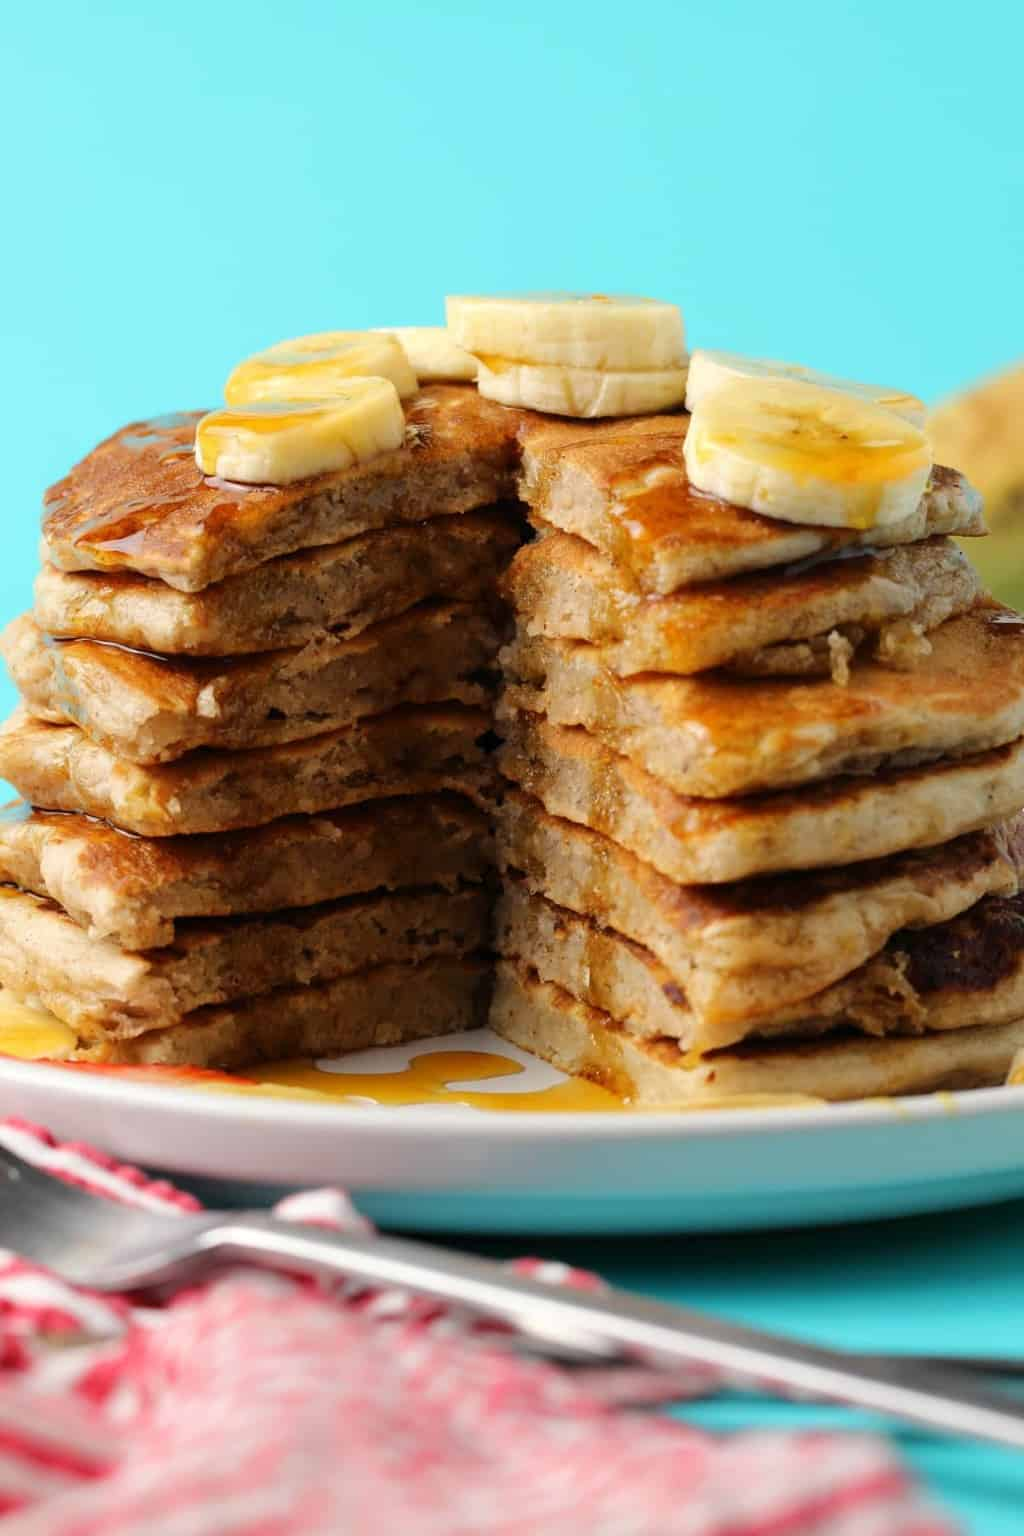 A stack of vegan banana pancakes with a slice cut out to show the centers.